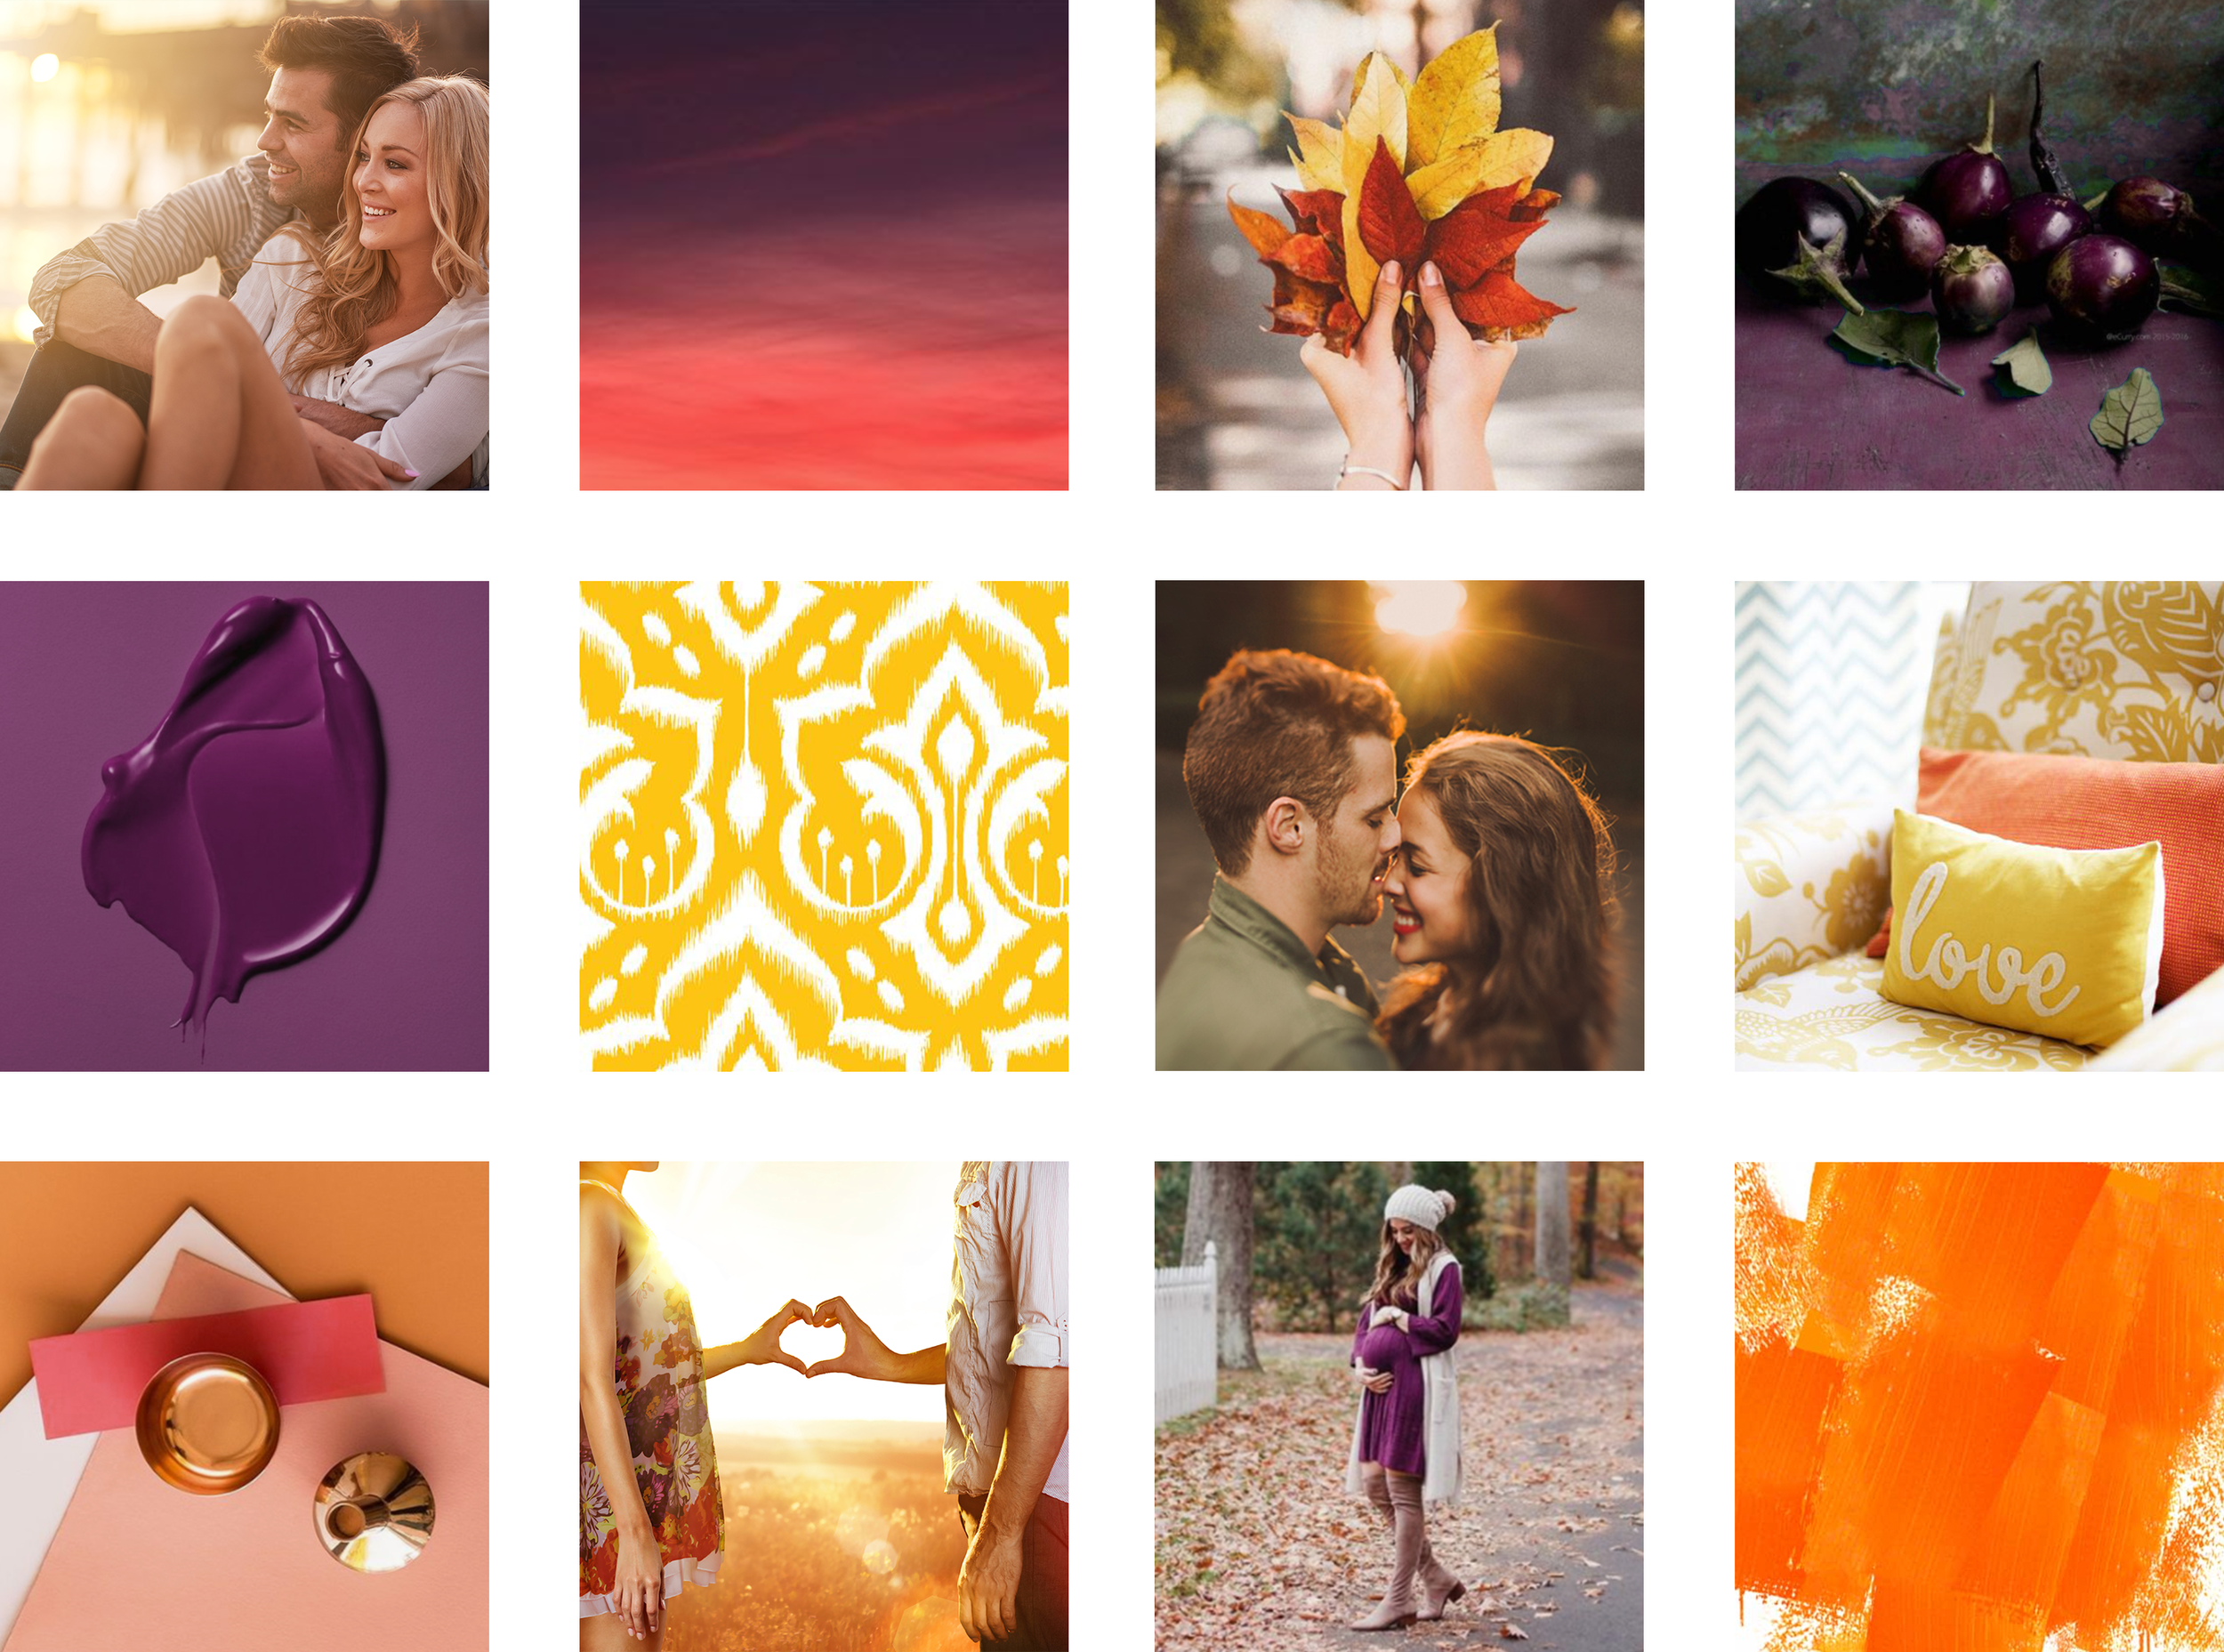 Moodboard for The Fertility Glow E-Course, by Janessa Rae Design Creative